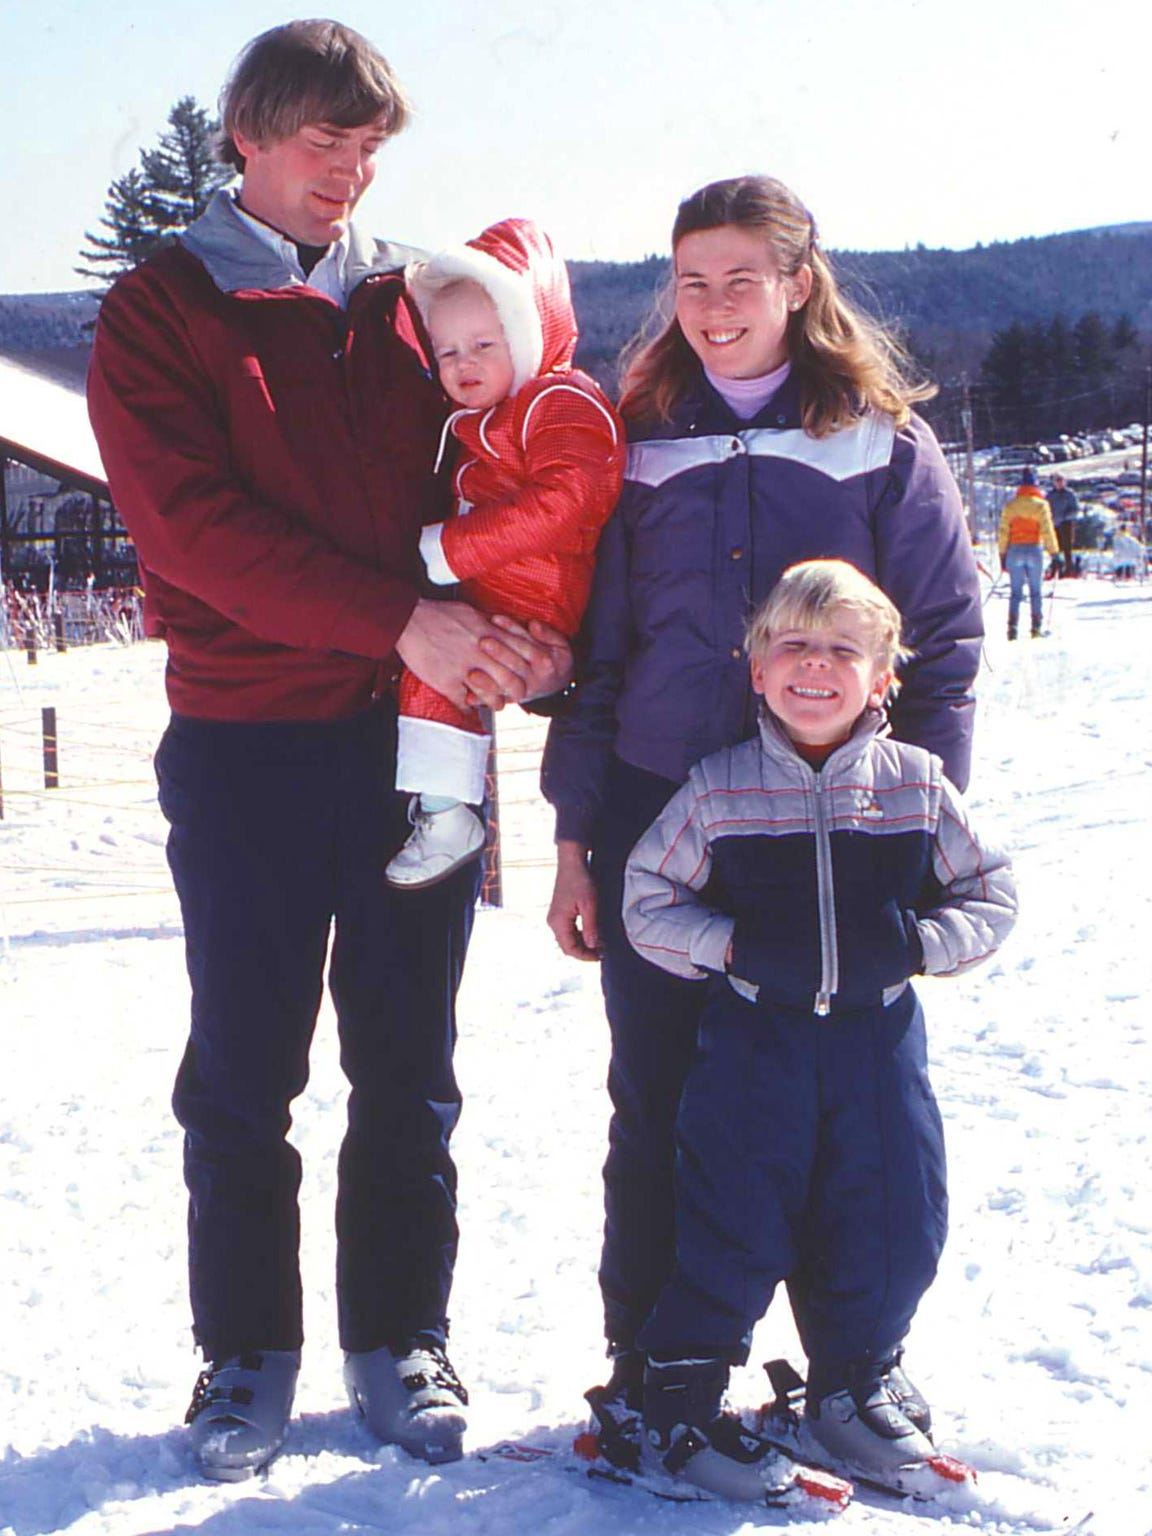 Tim and Diane Mueller with children Ethan and Erica